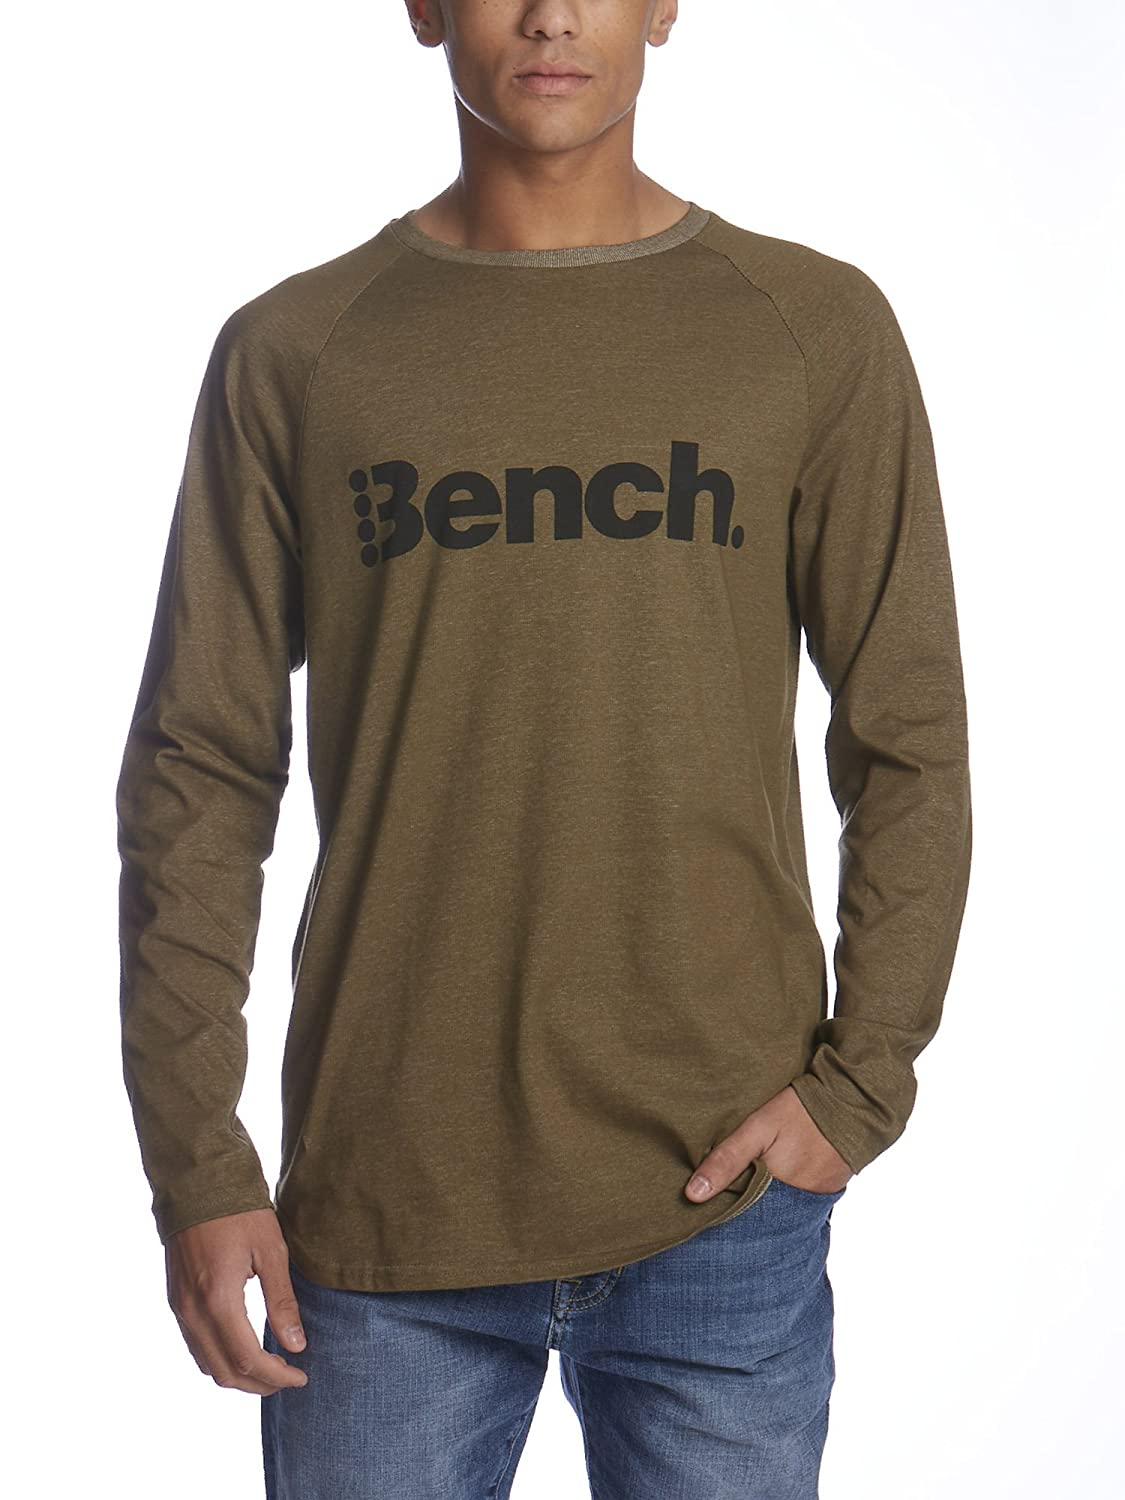 Bench, Cut Out maniche lunghe BEO2X|#Bench BMGF0163